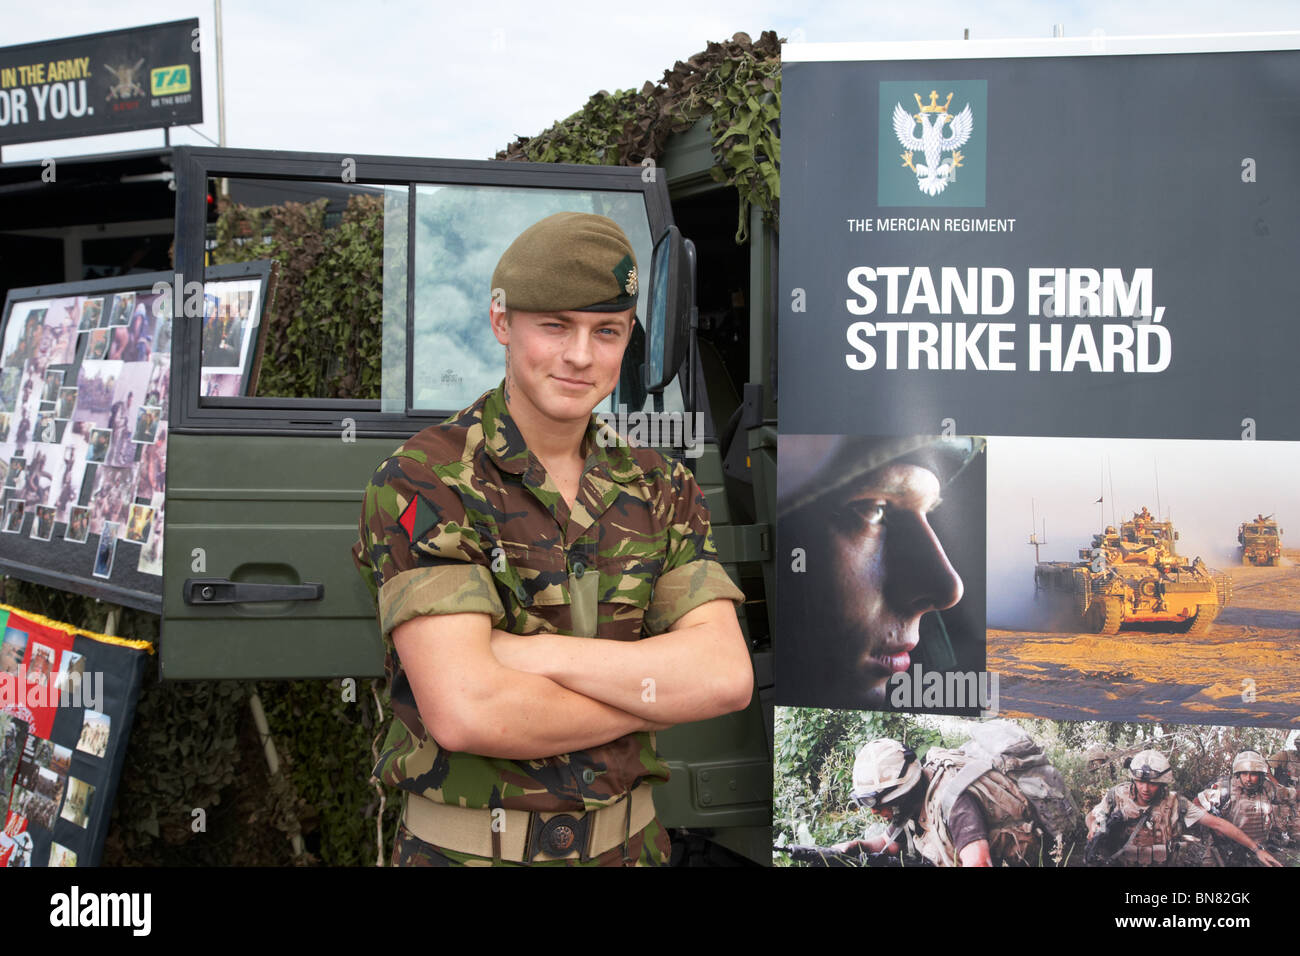 British Army soldier from the Mercian Regiment on an outdoor army recruitment stand at an event in the uk - Stock Image